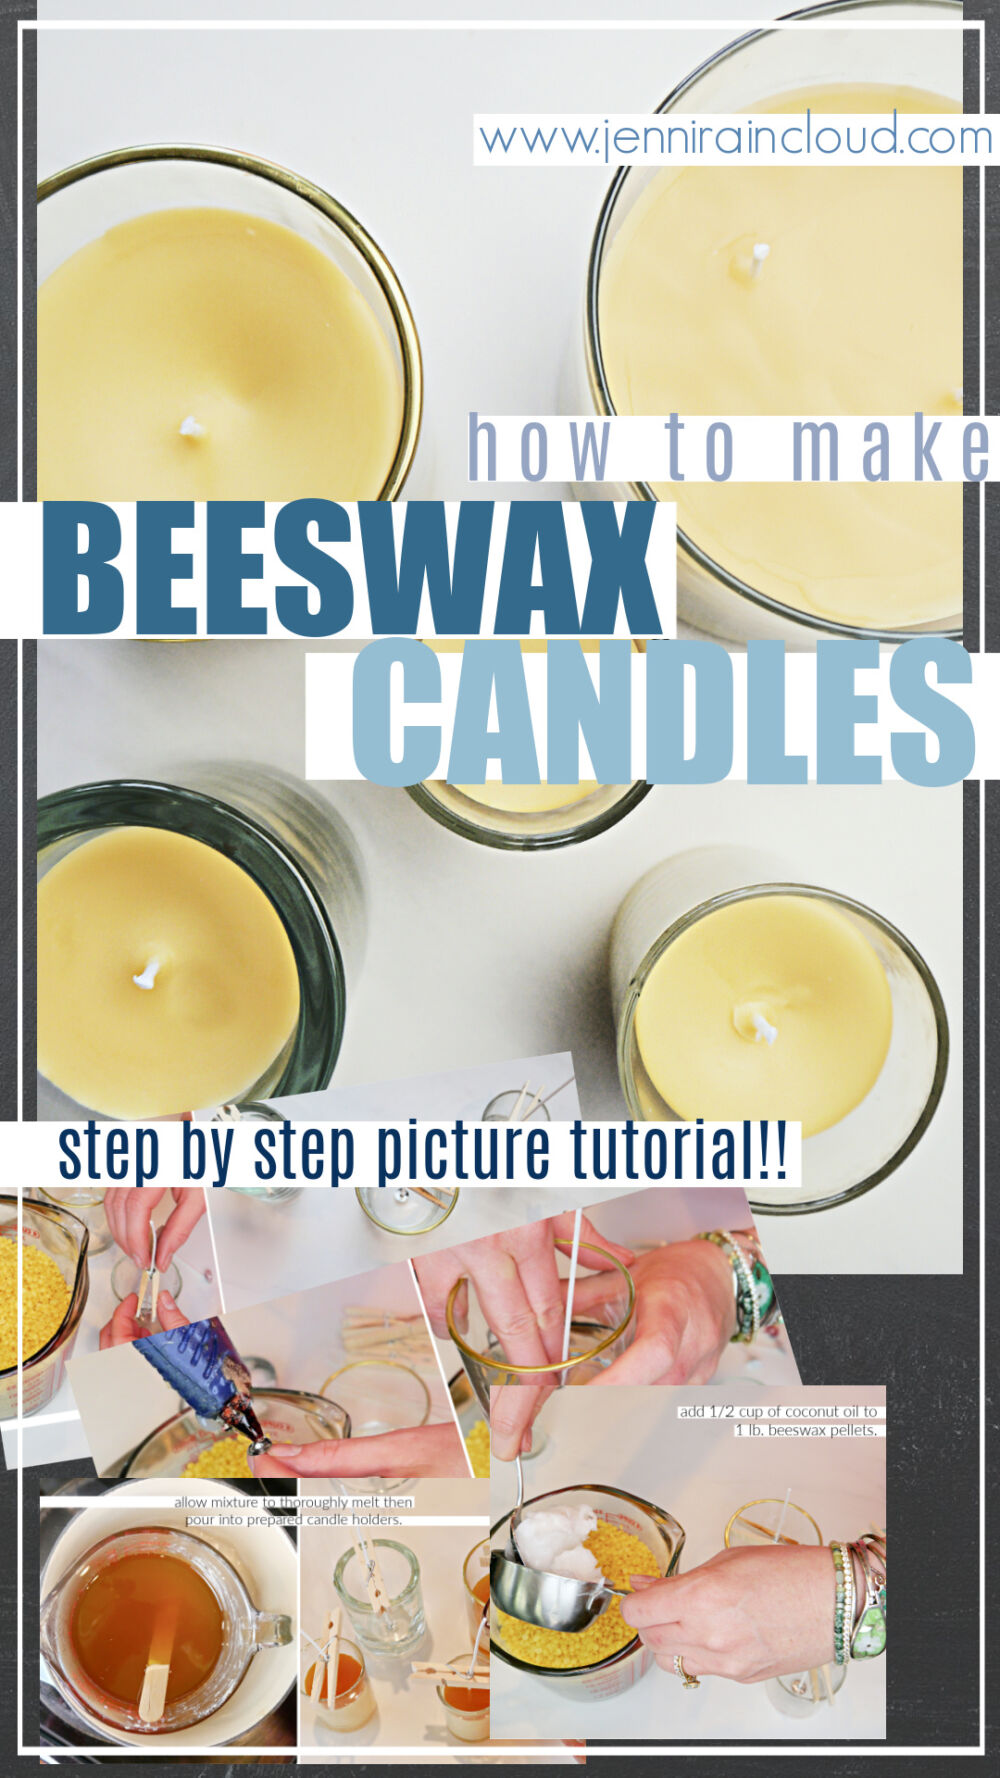 How to make Beeswax Candles pinterest